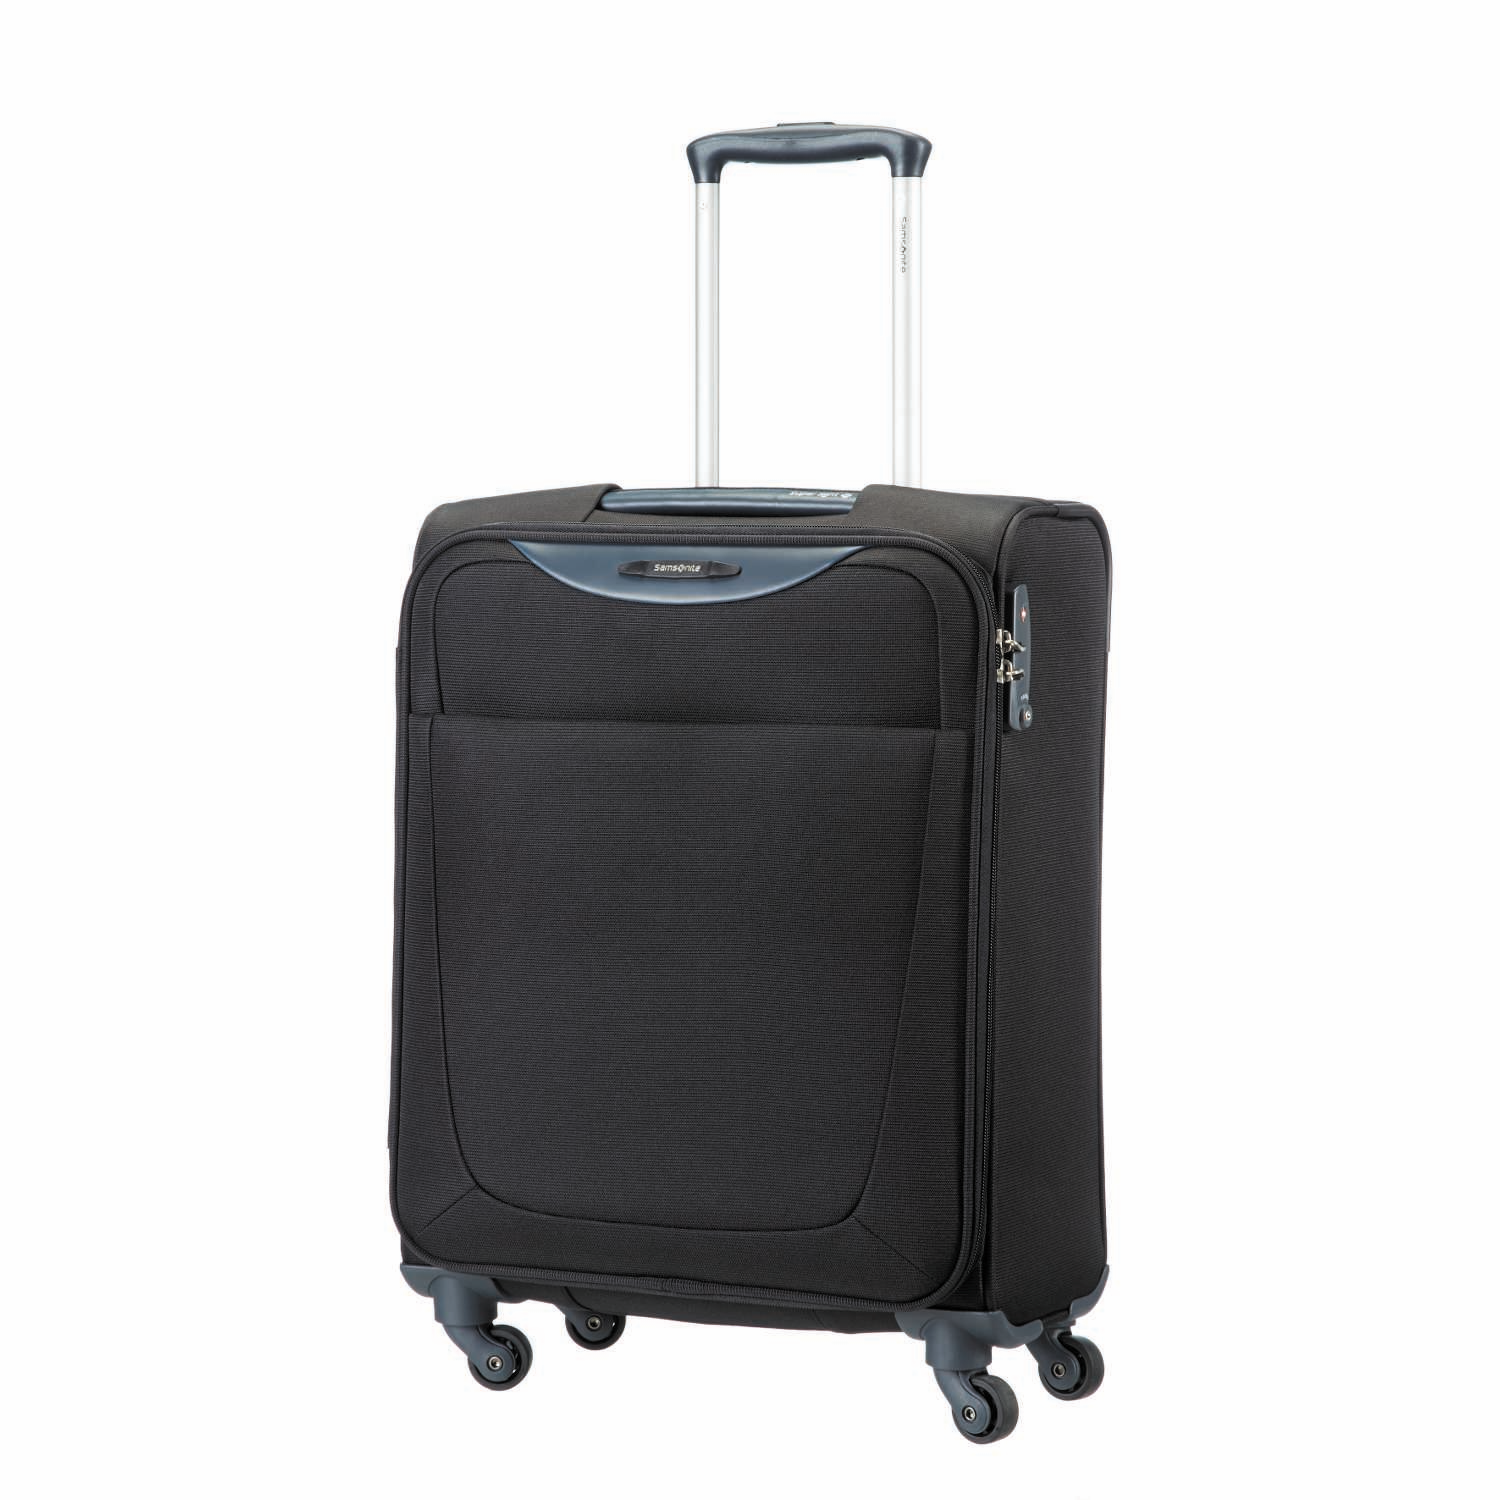 SAMSONITE (TRAVEL) – Βαλίτσα BASEHITS SPINNER 55/20 Samsonite μαύρη